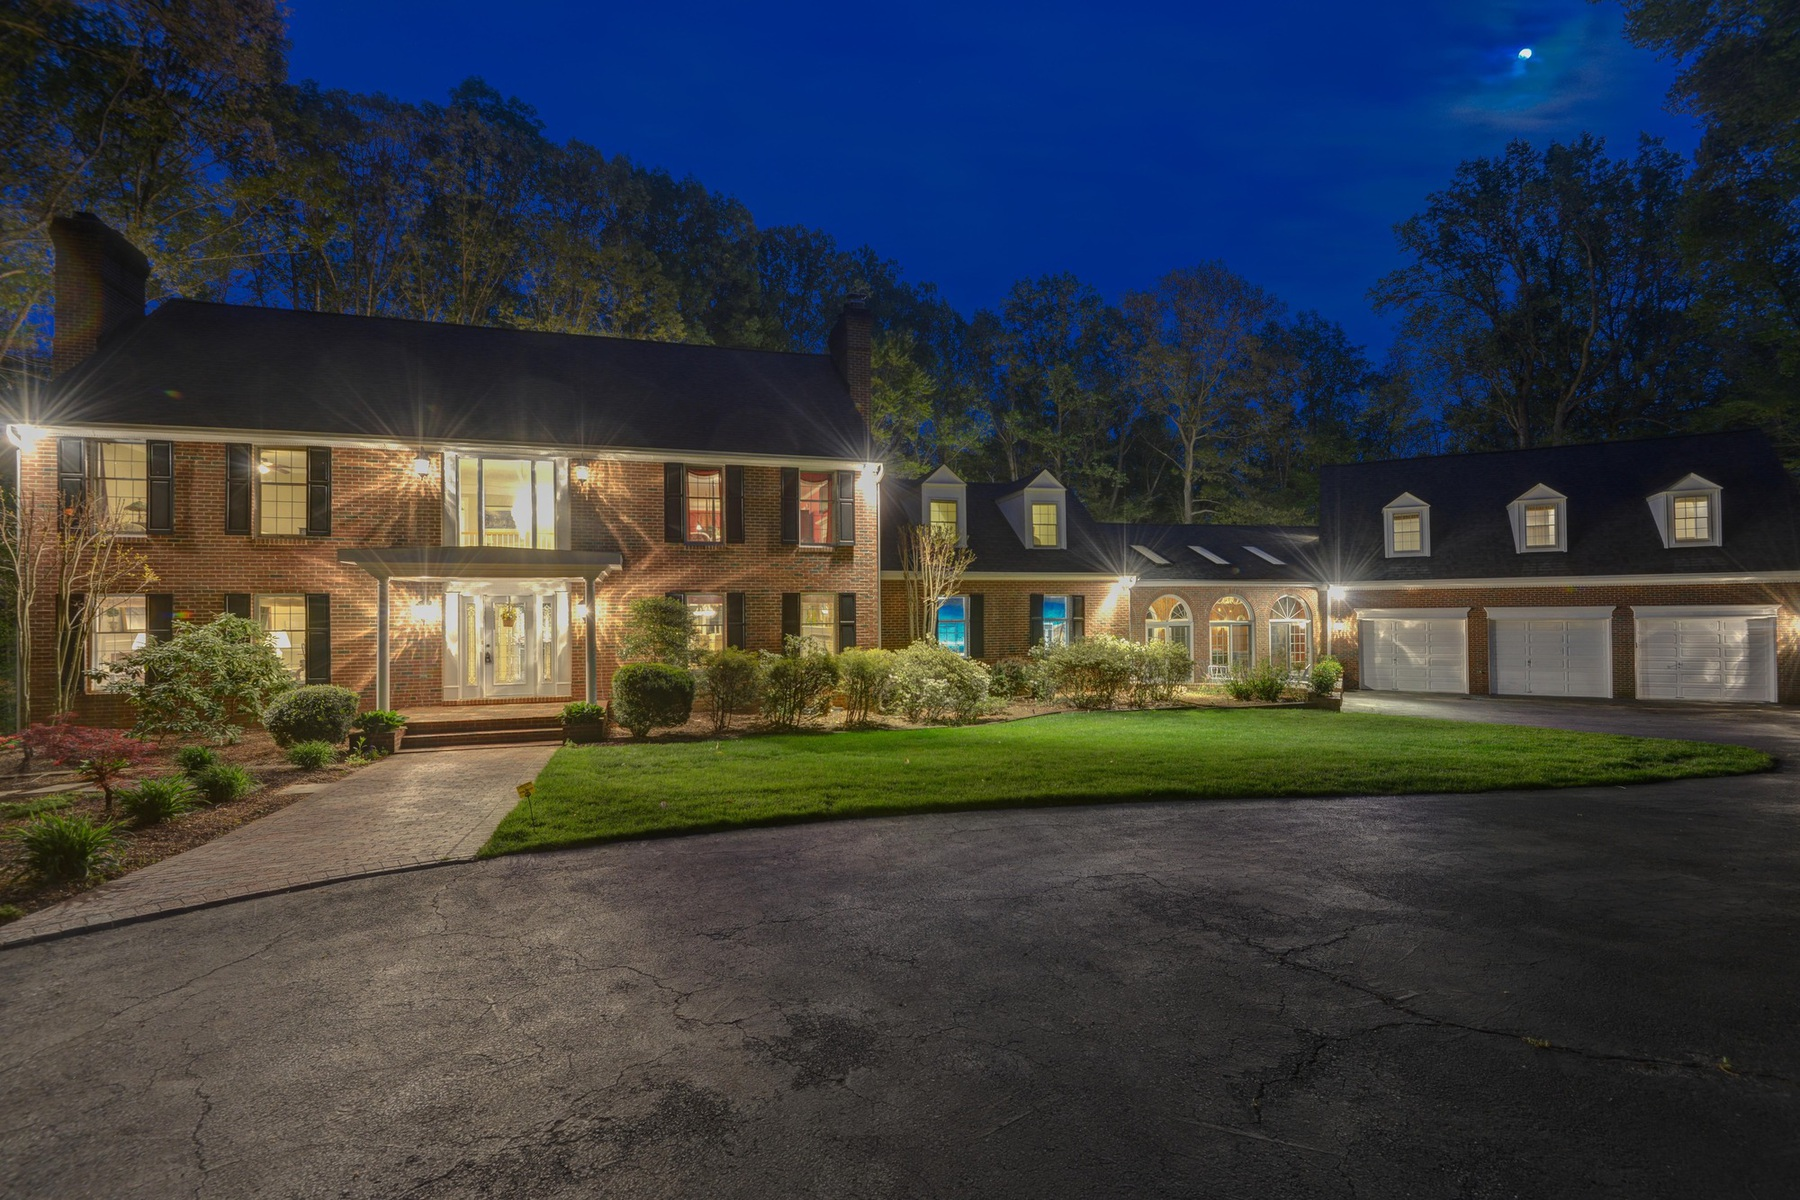 Maison unifamiliale pour l Vente à Harbor Hills 735 Intrepid Way Davidsonville, Maryland 21035 États-Unis